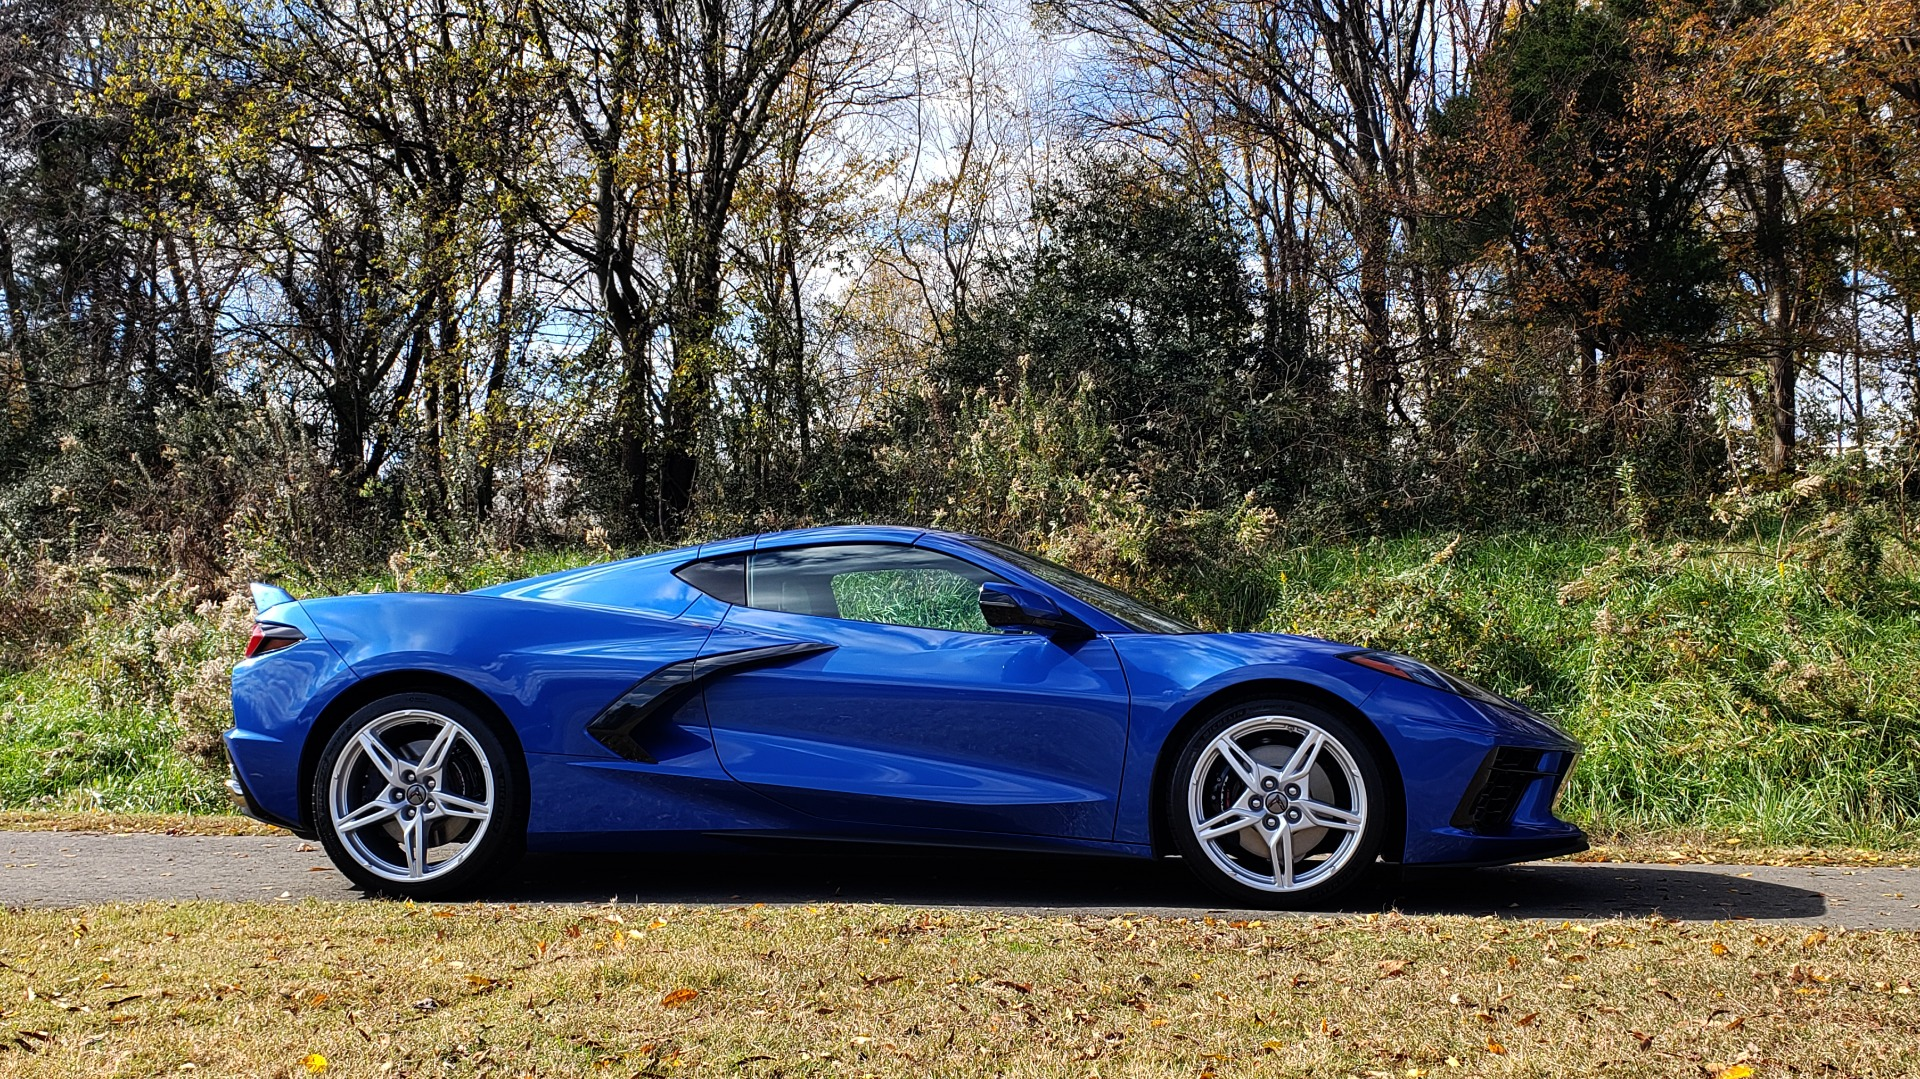 Used 2020 Chevrolet C8 CORVETTE STINGRAY 2LT COUPE / NAV / HUD / BOSE / GT2 SEATS / FRONT LIFT / REARVIEW for sale $98,999 at Formula Imports in Charlotte NC 28227 13